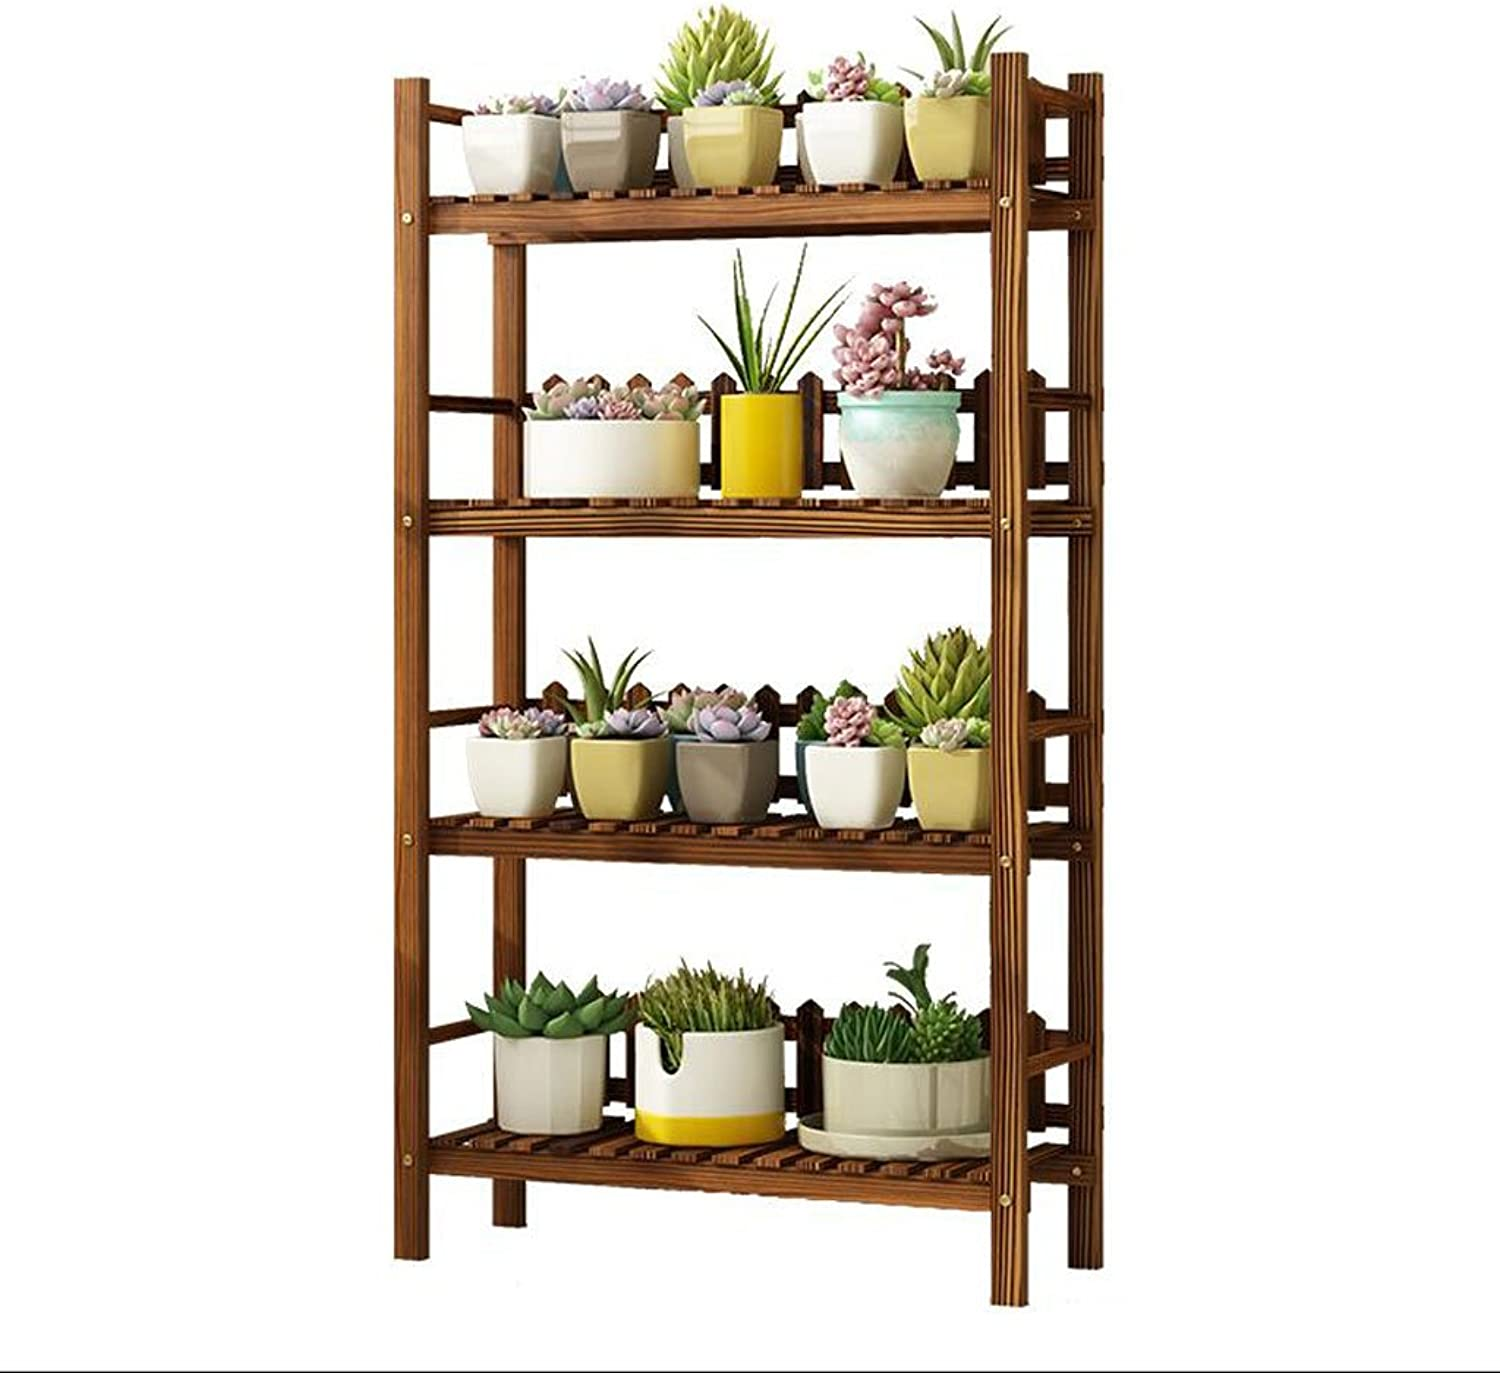 Flower stand Solid Wood flower stand Plant Stand Indoor Balcony flower stand Multi-Layer Floor Shelf Three-Dimensional flower stand (Size   L)